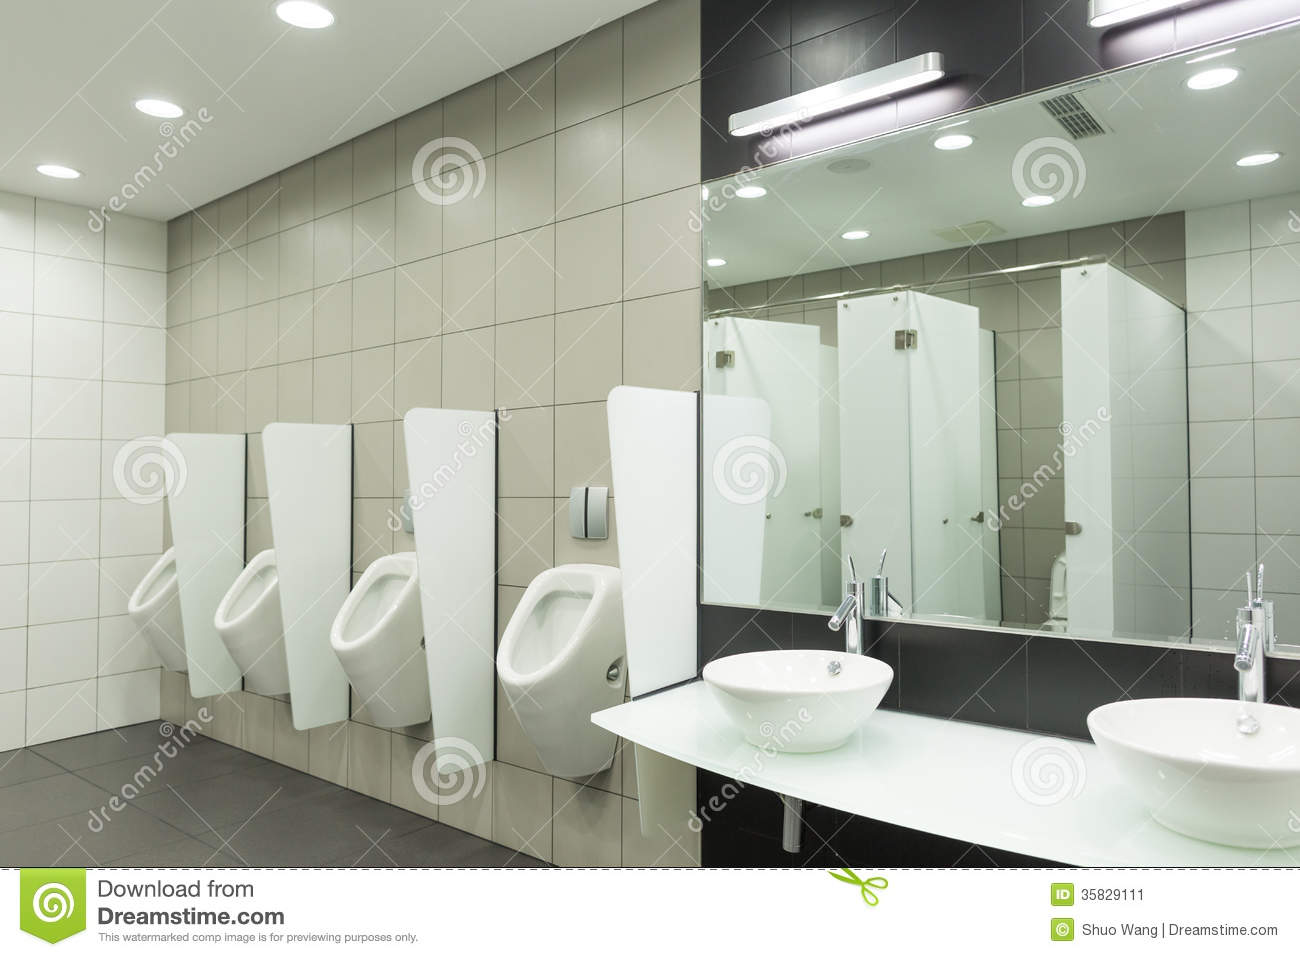 Wc for men stock image image 35829111 for Male bathroom design